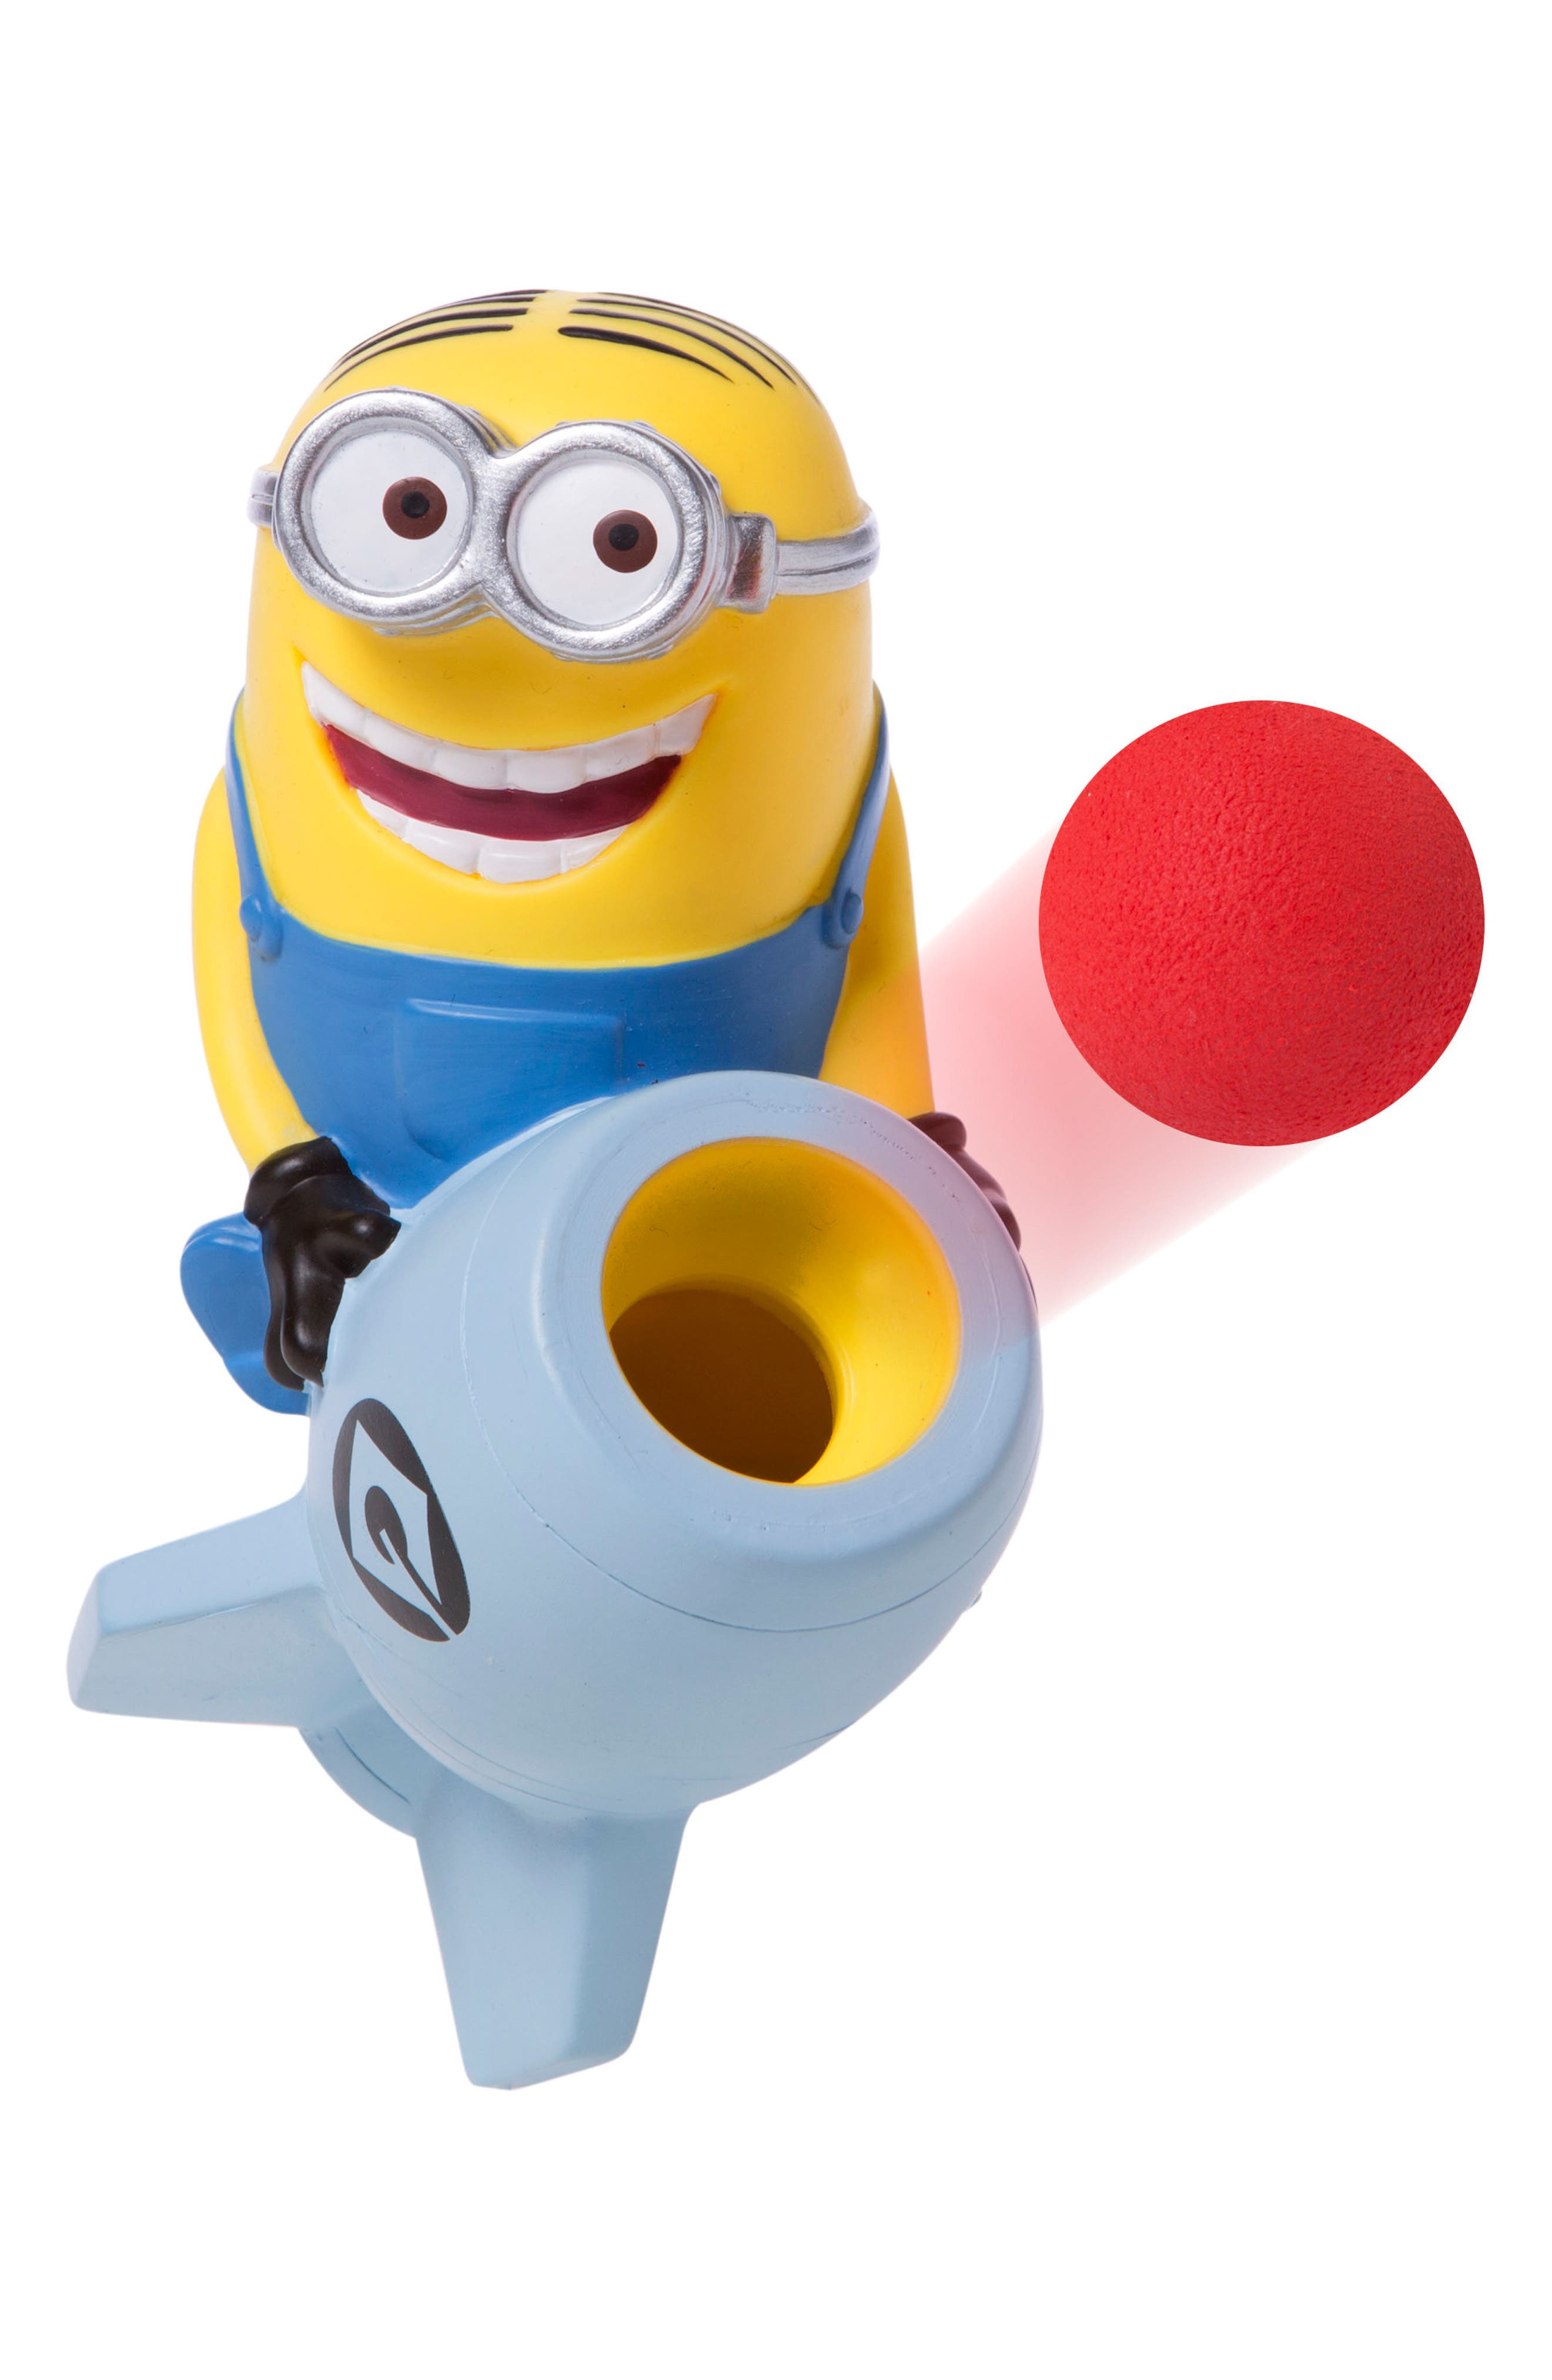 Dave Minion Popper Toy,                             Main thumbnail 1, color,                             700